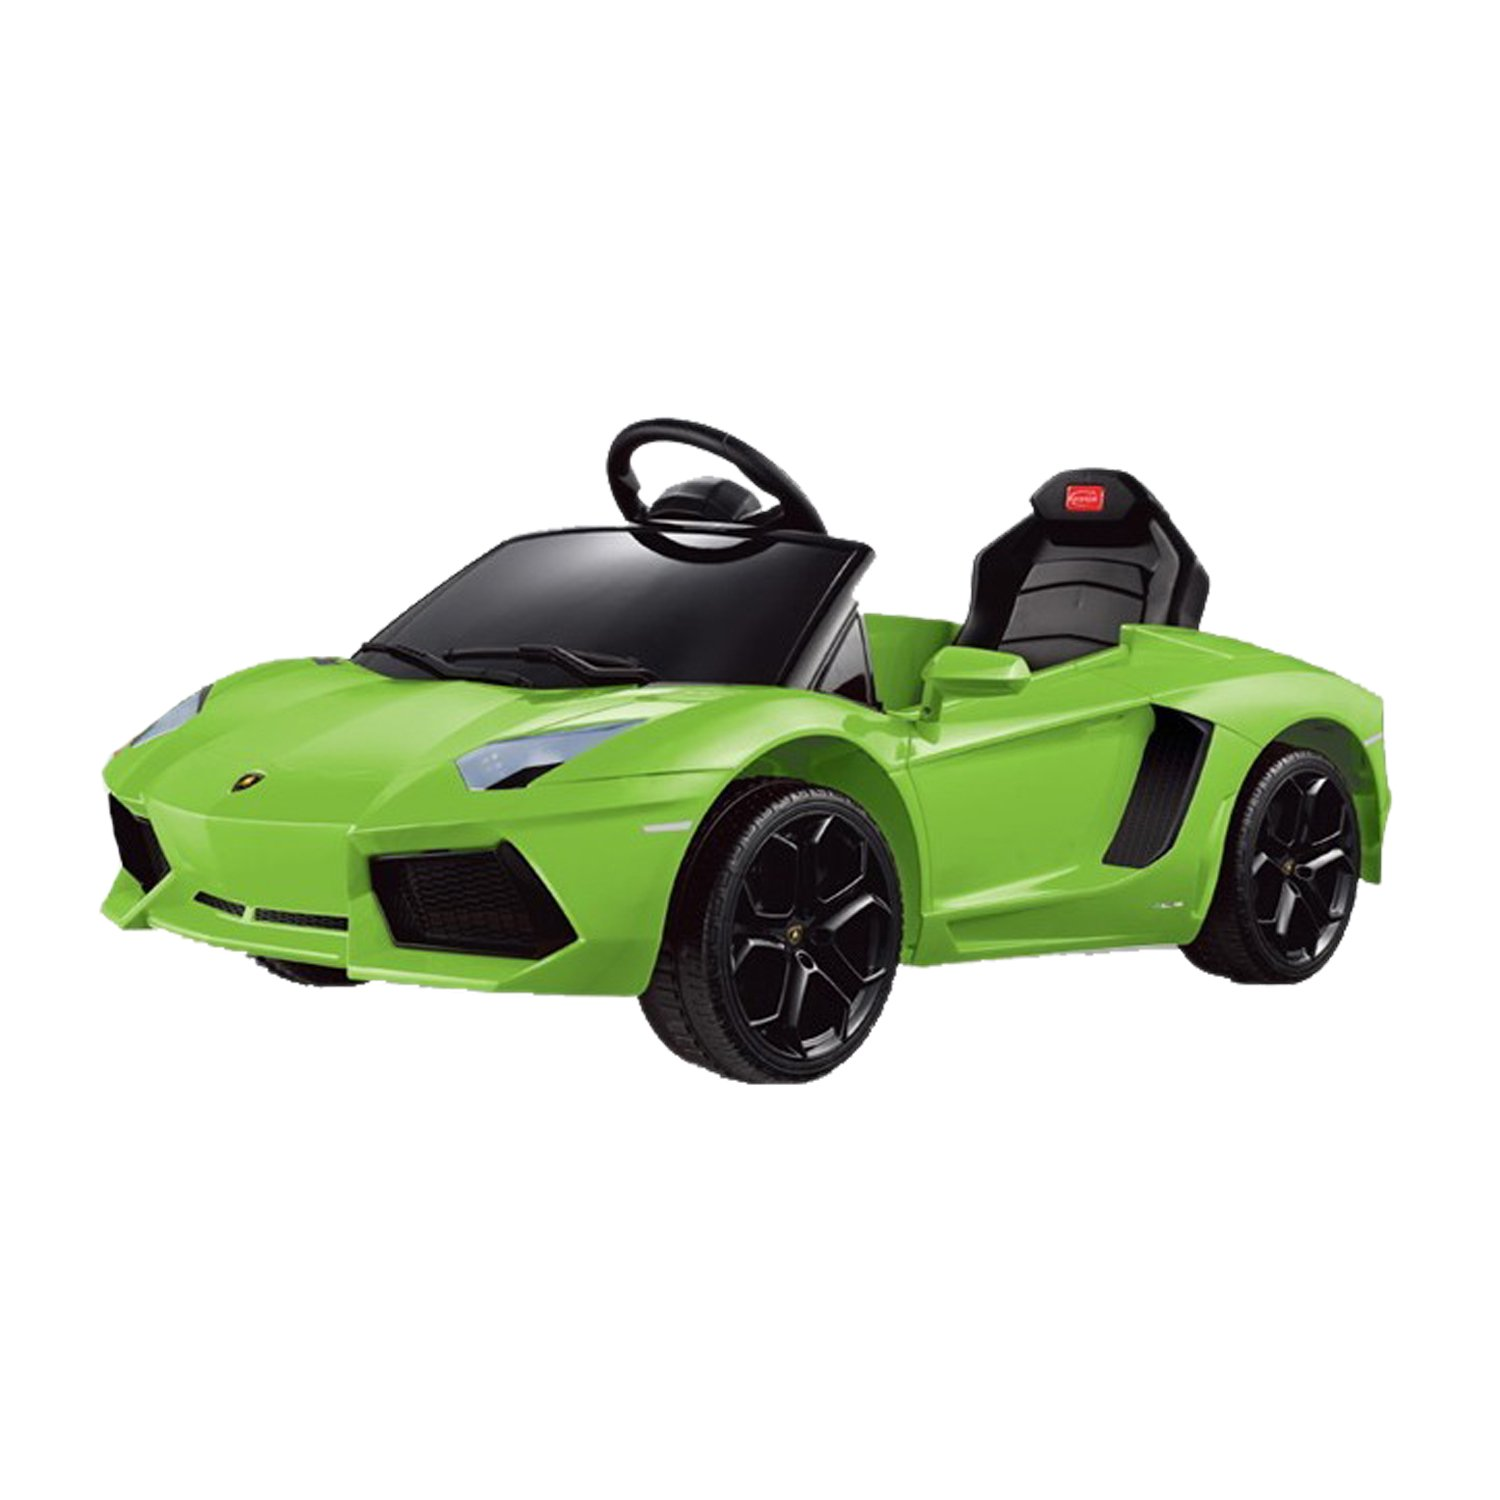 Captivating Lamborghini Aventador Kids 6v Electric Ride On Toy Car W/ Parent Remote  Control   Green